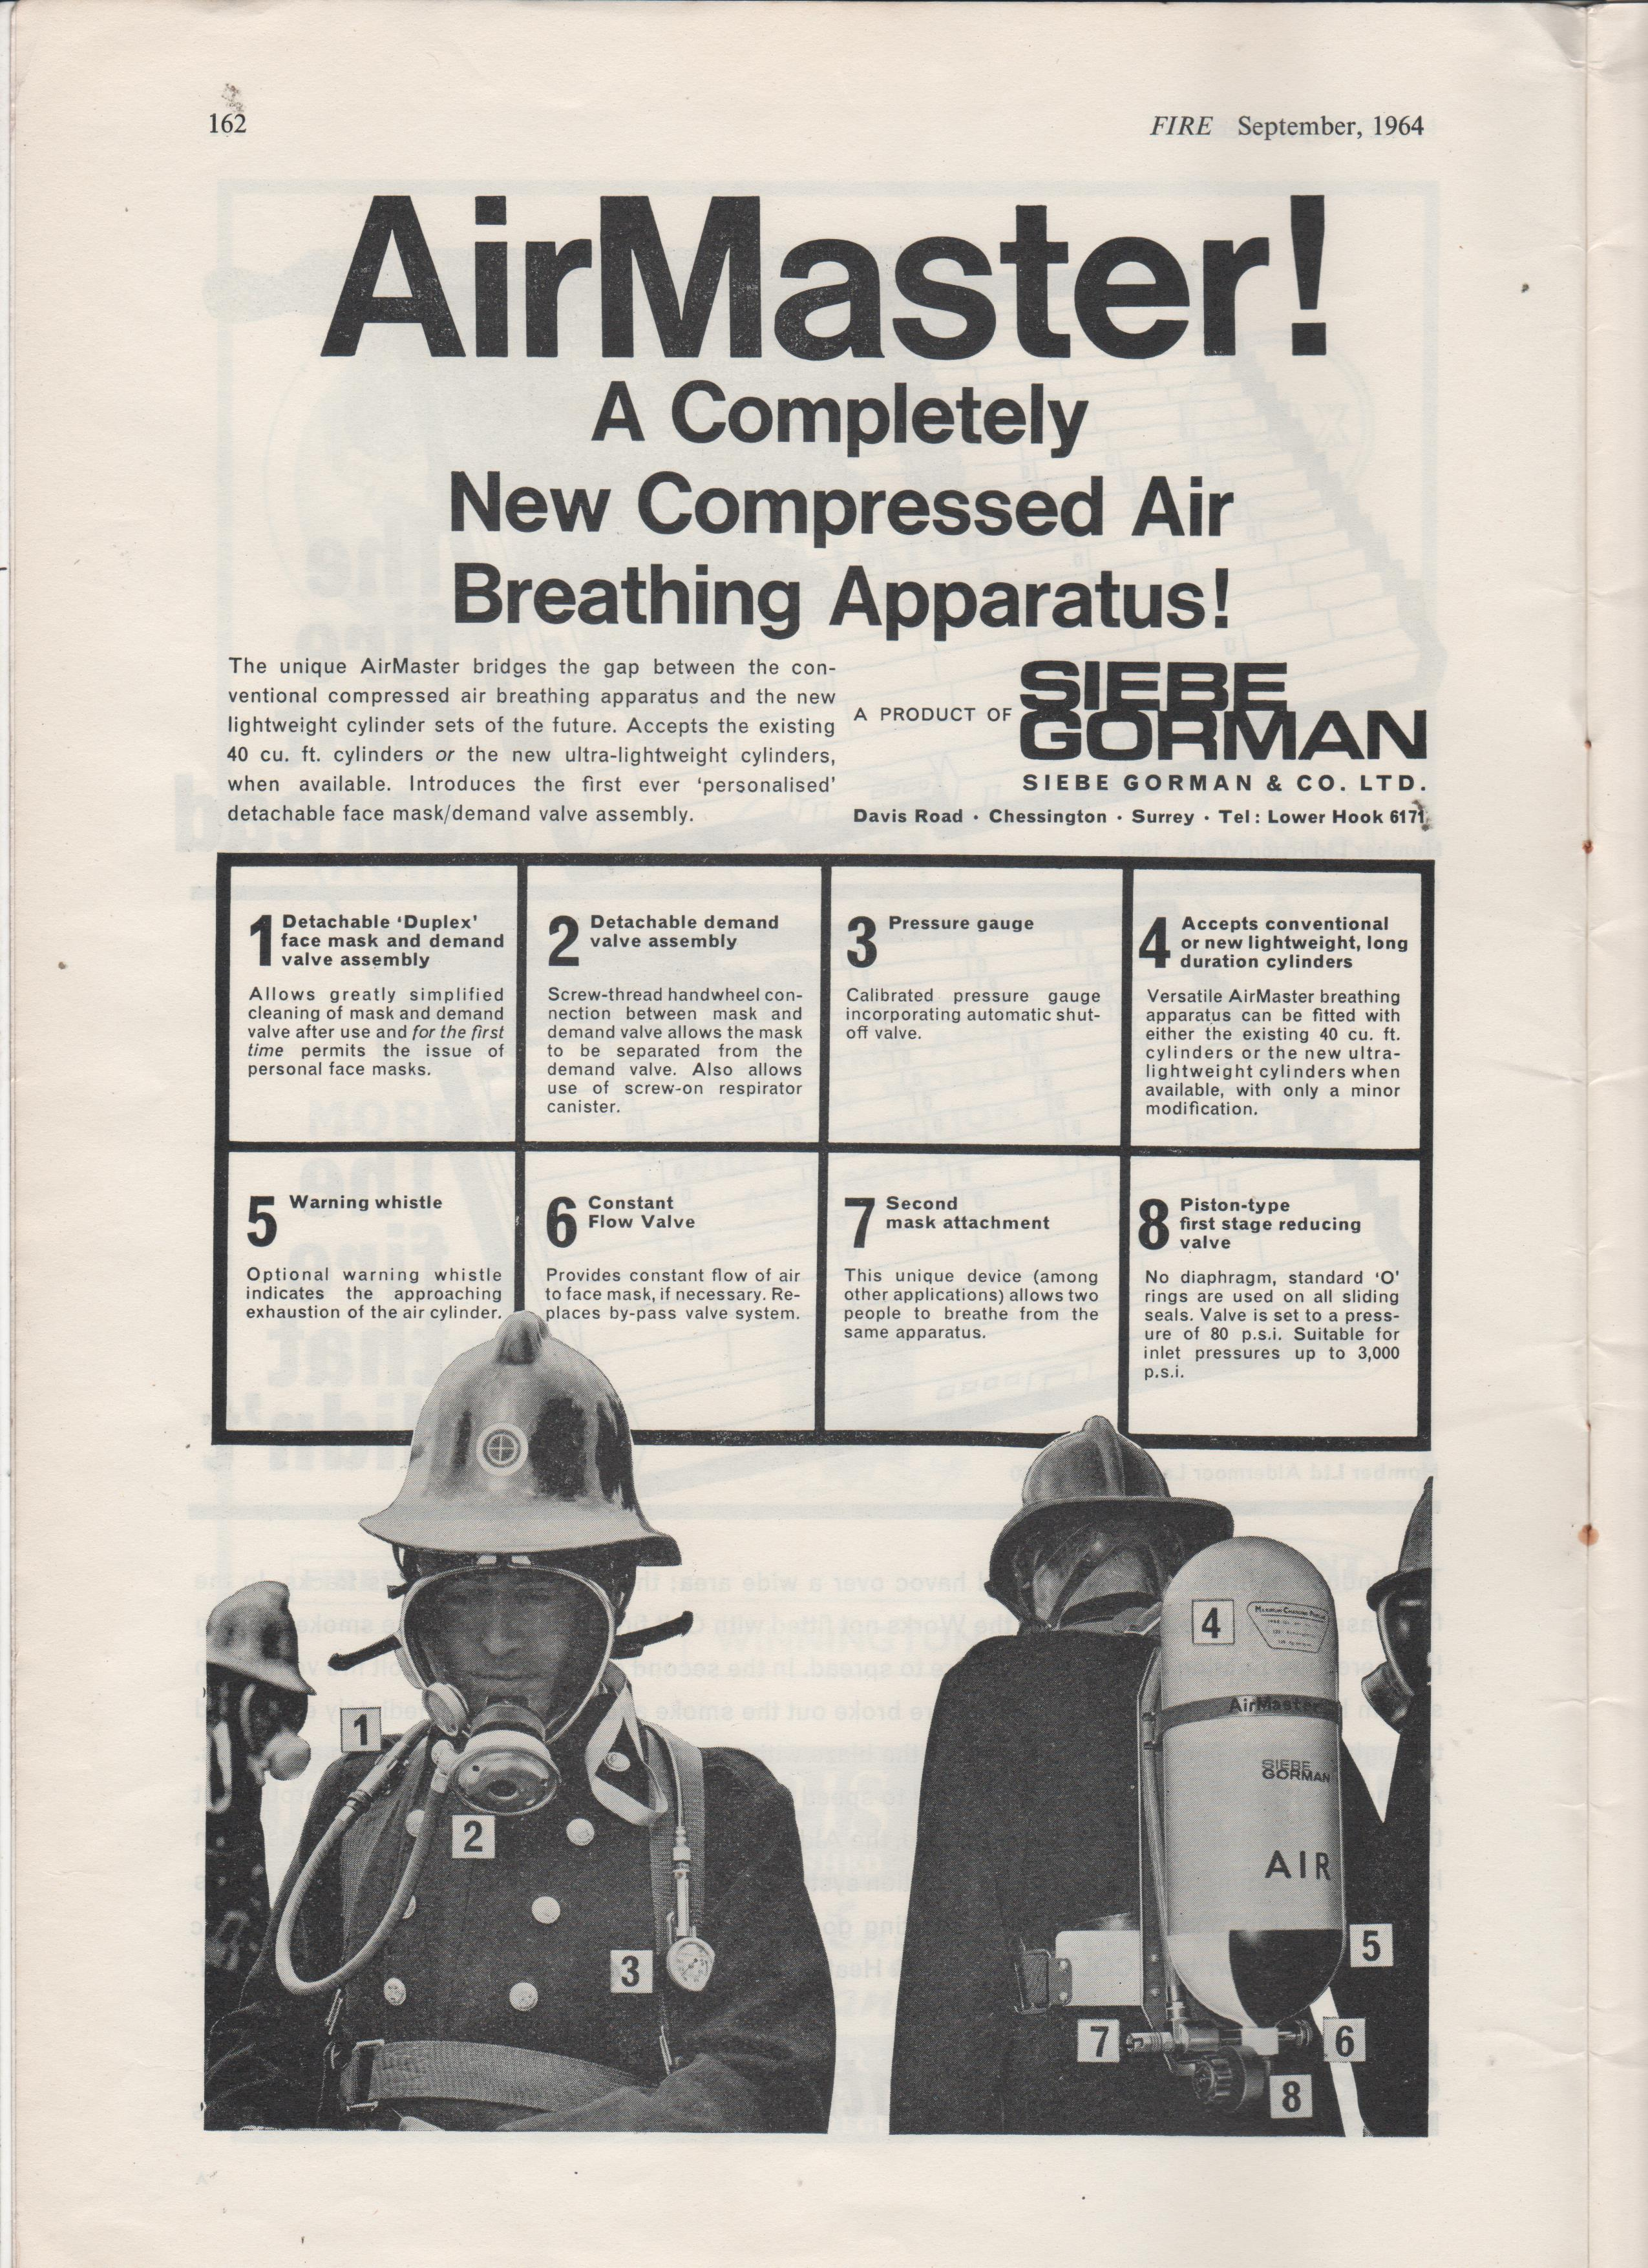 Equipment Advertisements From 1964